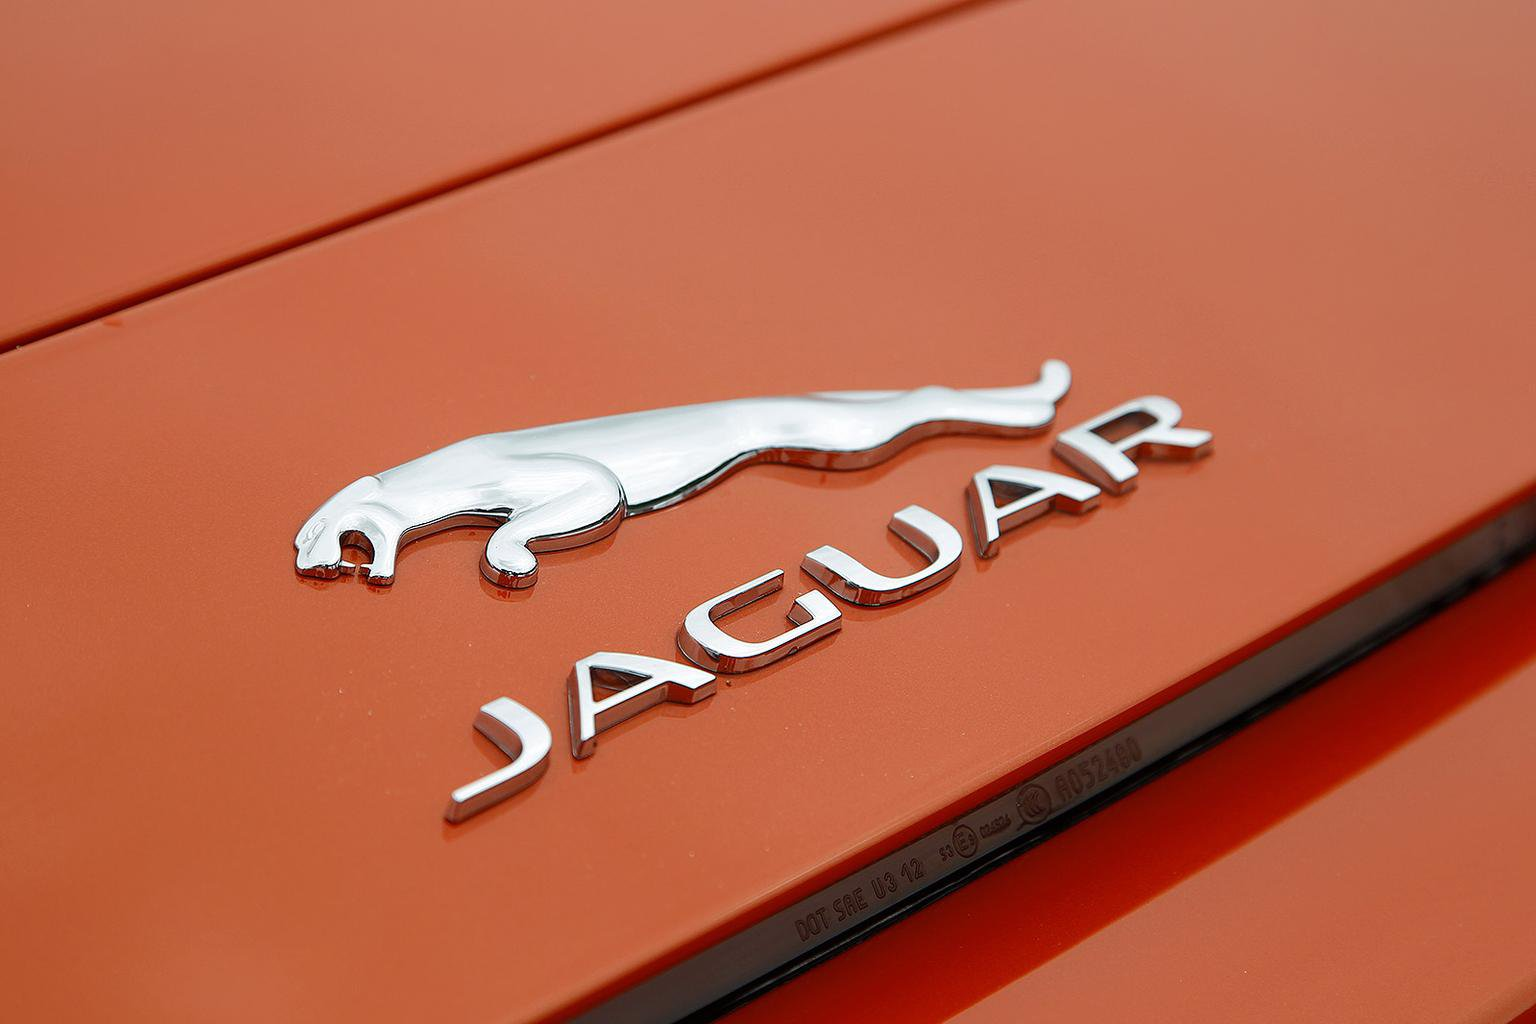 JAGUAR SAYS...